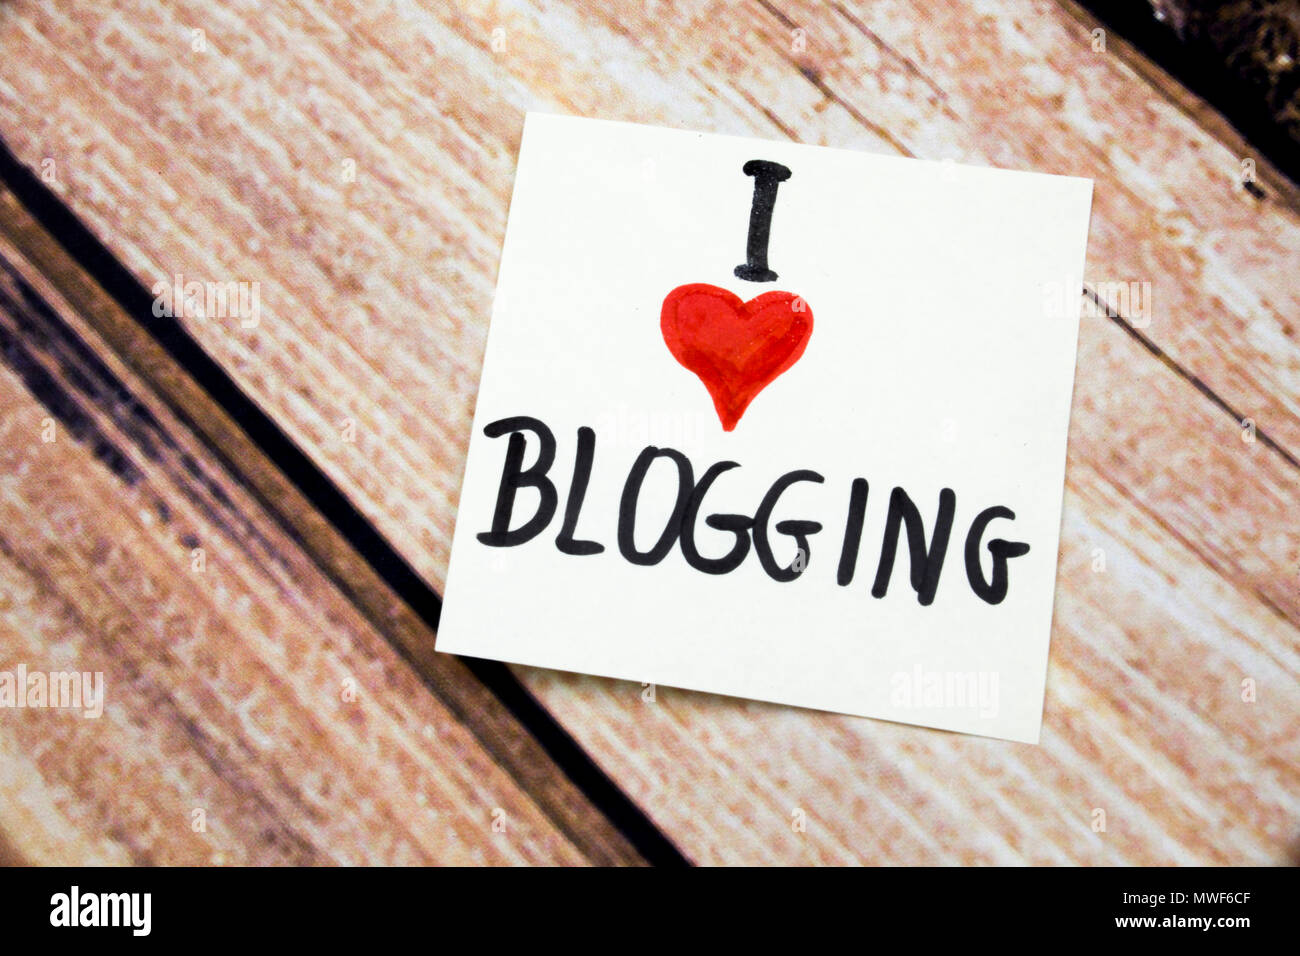 I Love Blogging Message With Red Heart Symbol On The White Paper